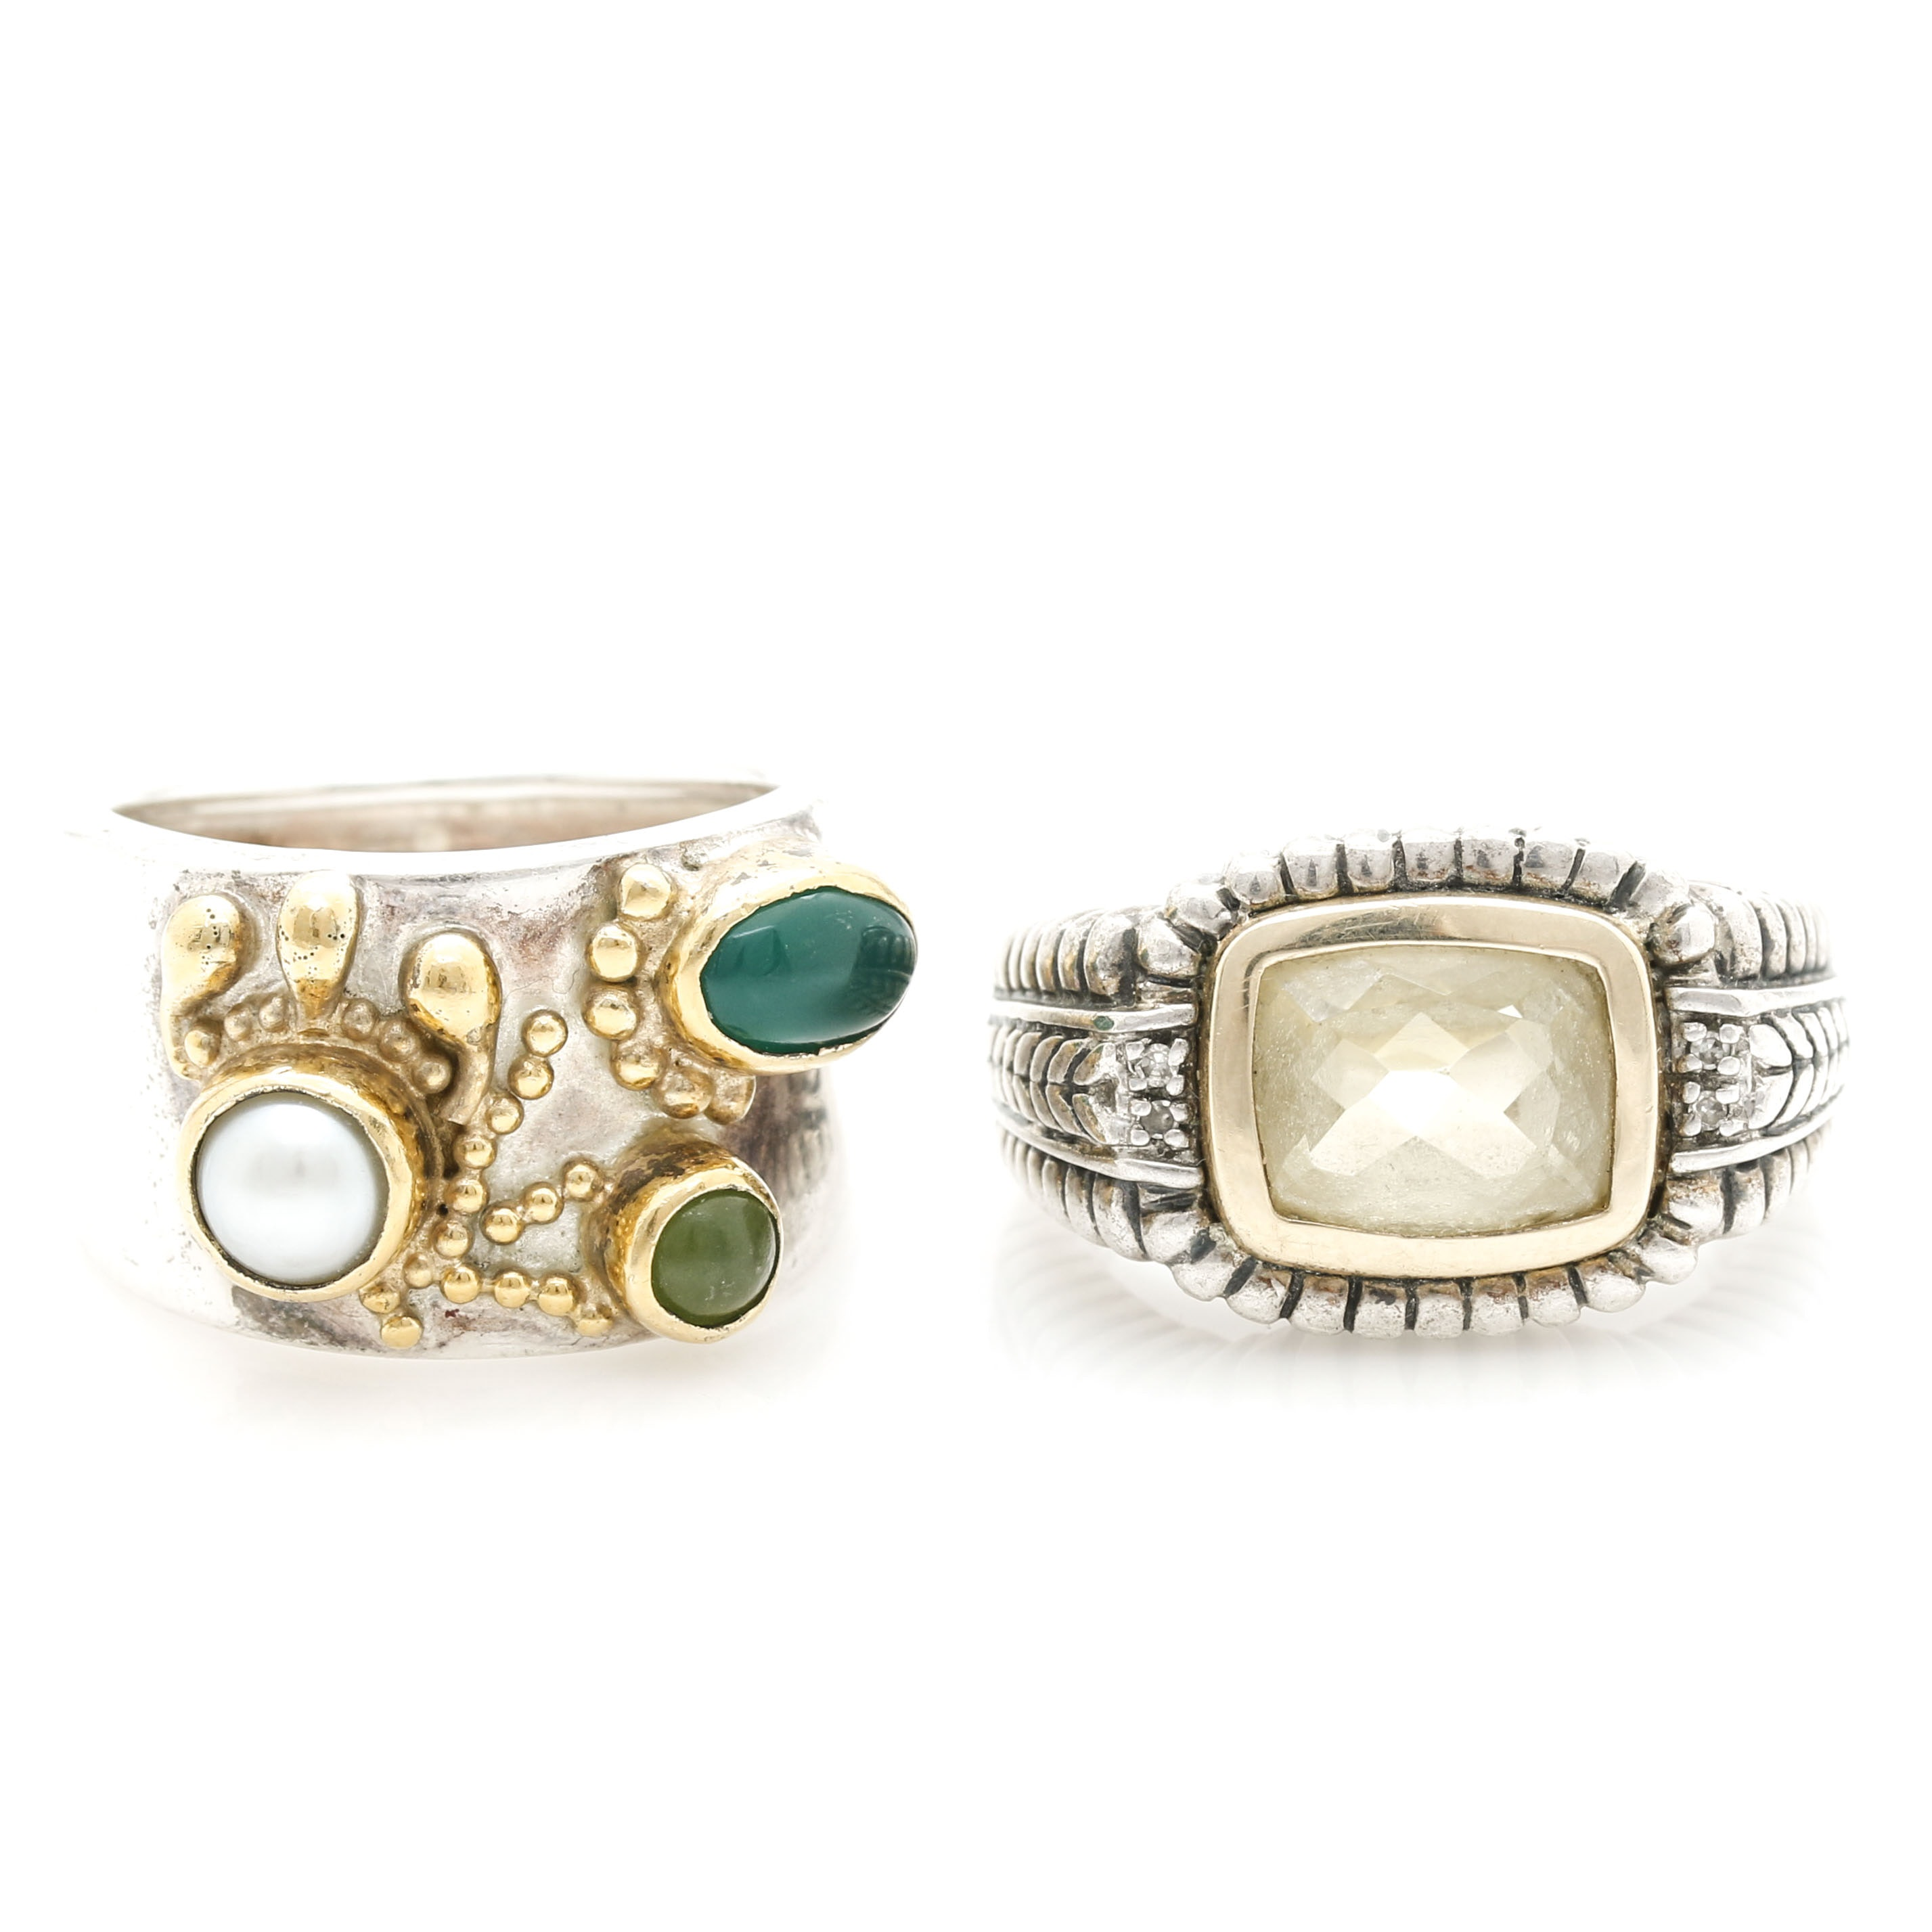 Sterling Silver Rings With Citrine, Green Chalcedony, Pearl and Nephrite